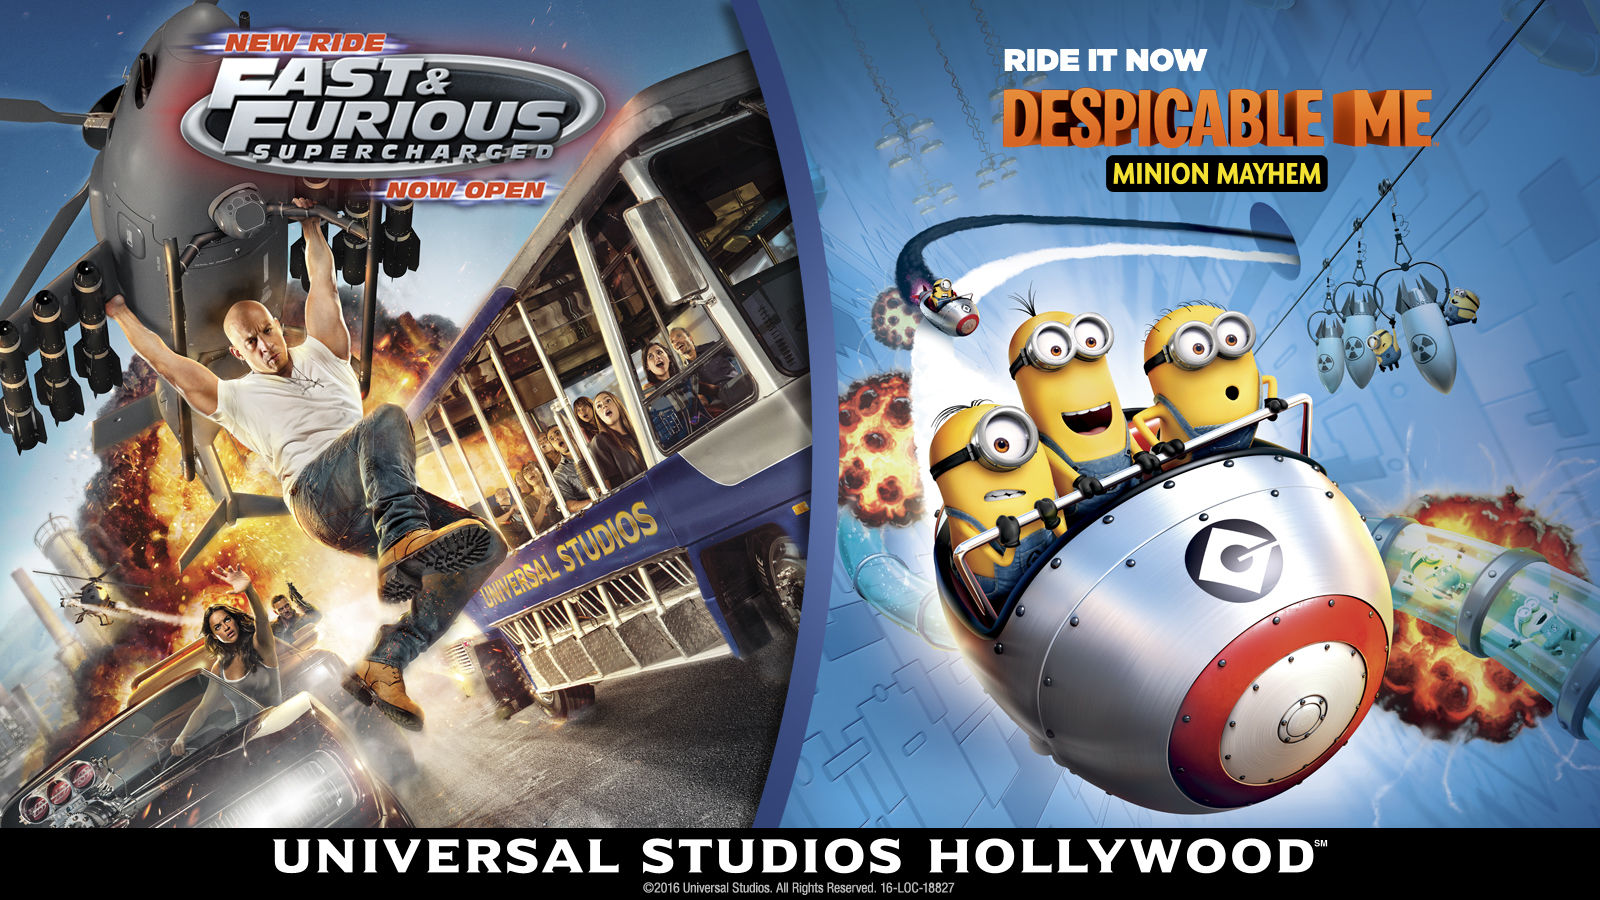 Universal Studios Hollywood Hotels - Universal Studios Attractions